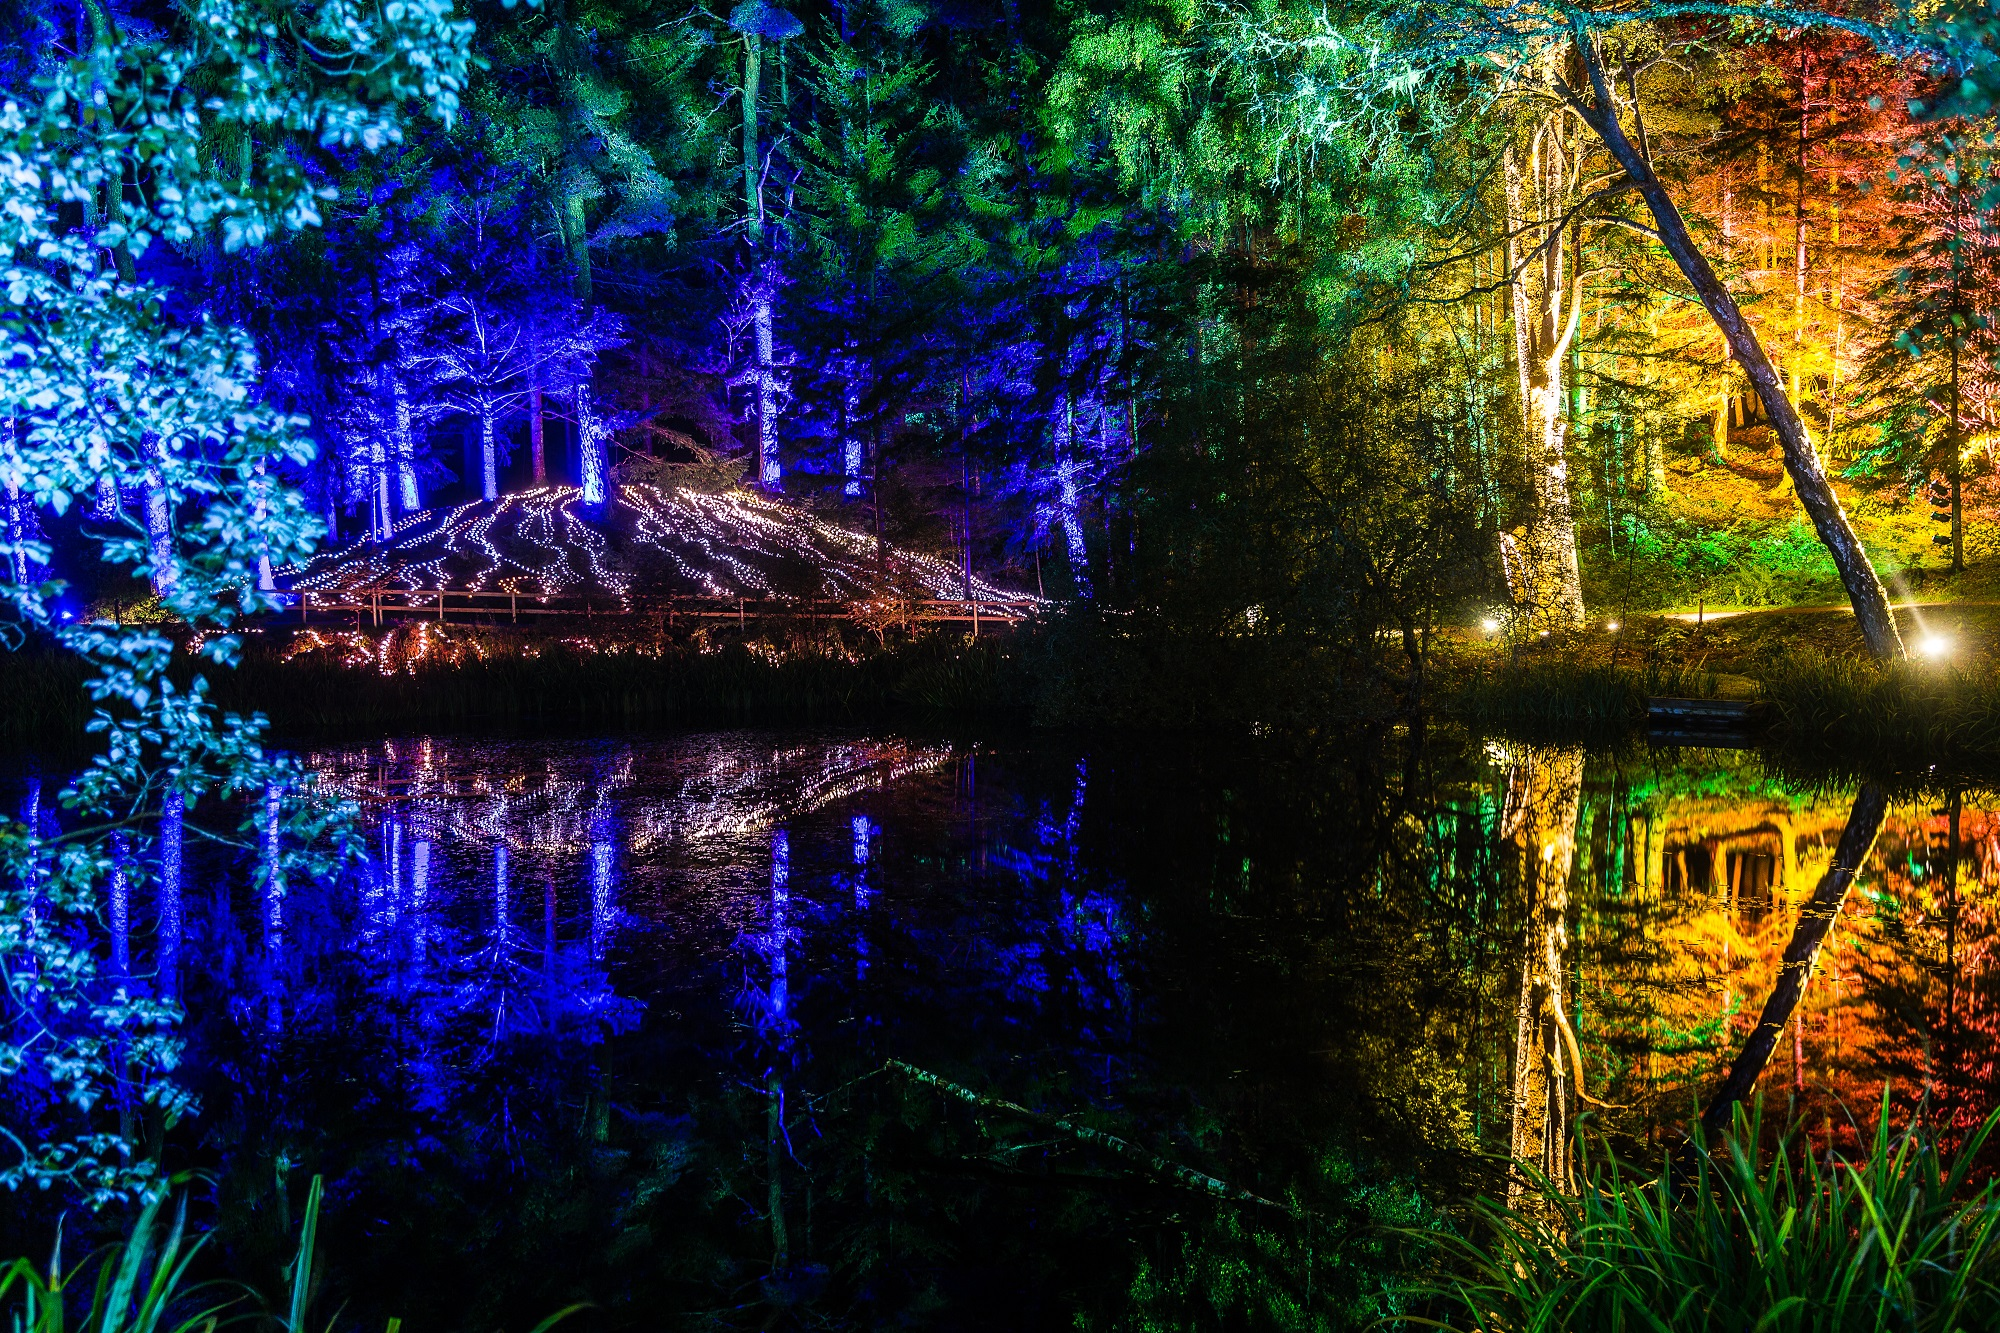 Enchanted Forest 2017 preview night